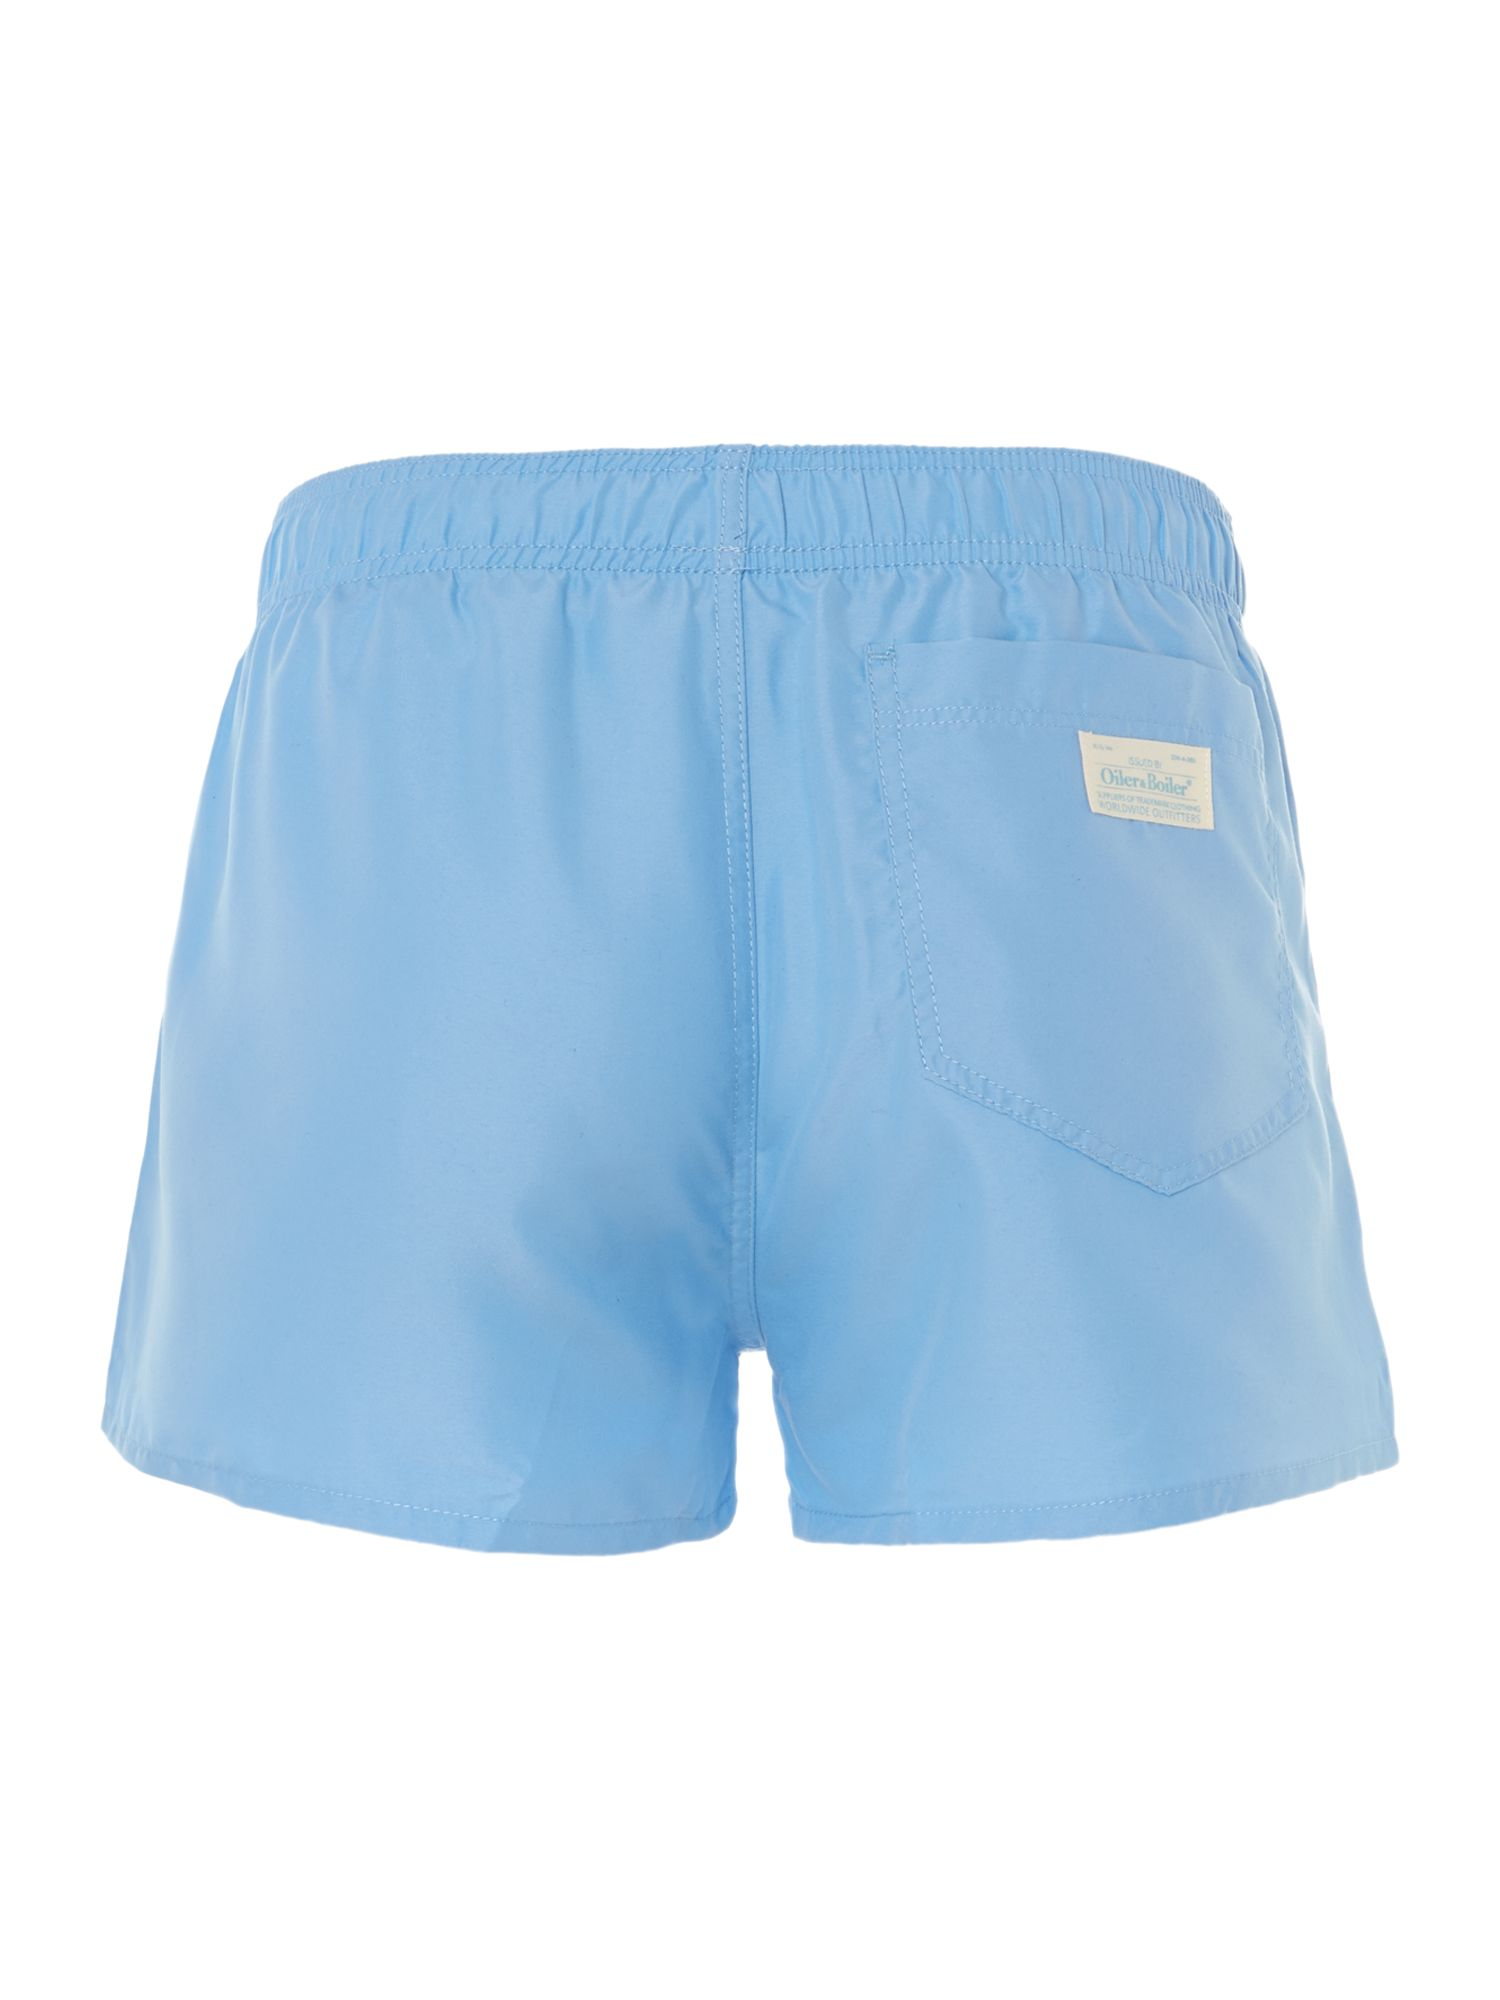 Solid short swim trunk